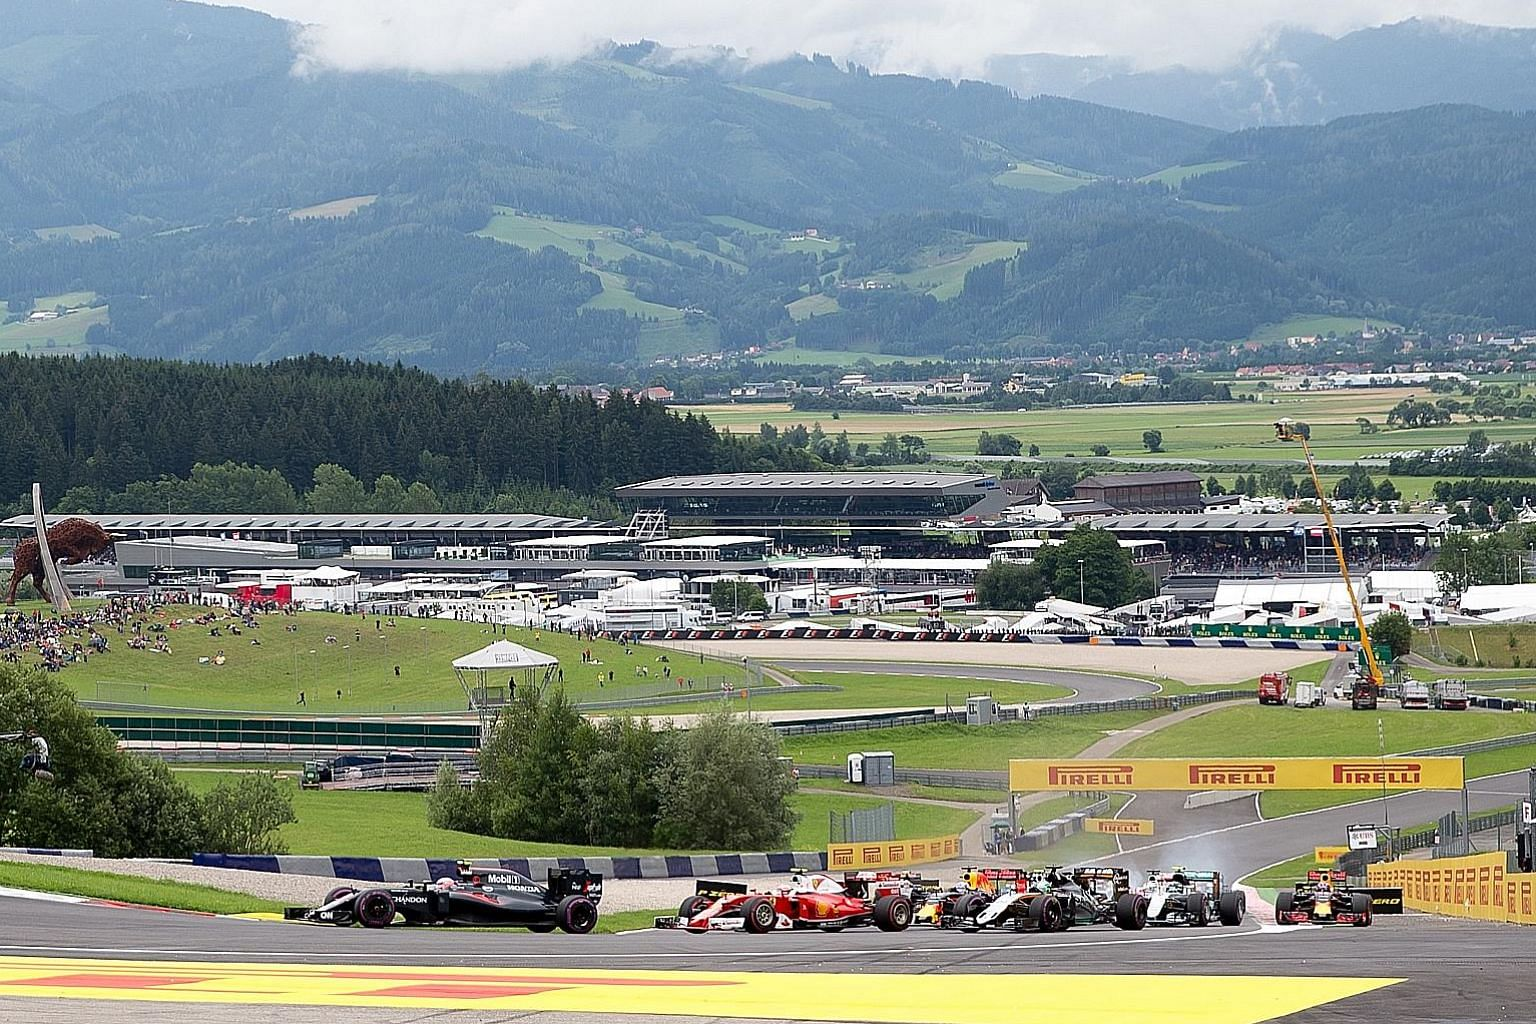 The pack going round Turn 2 after the start of last year's Austrian Grand Prix in Spielberg. Dutchman Max Verstappen has won for Red Bull at their home race in the past two years and will have the chance to make it a double next month. The circuit wi